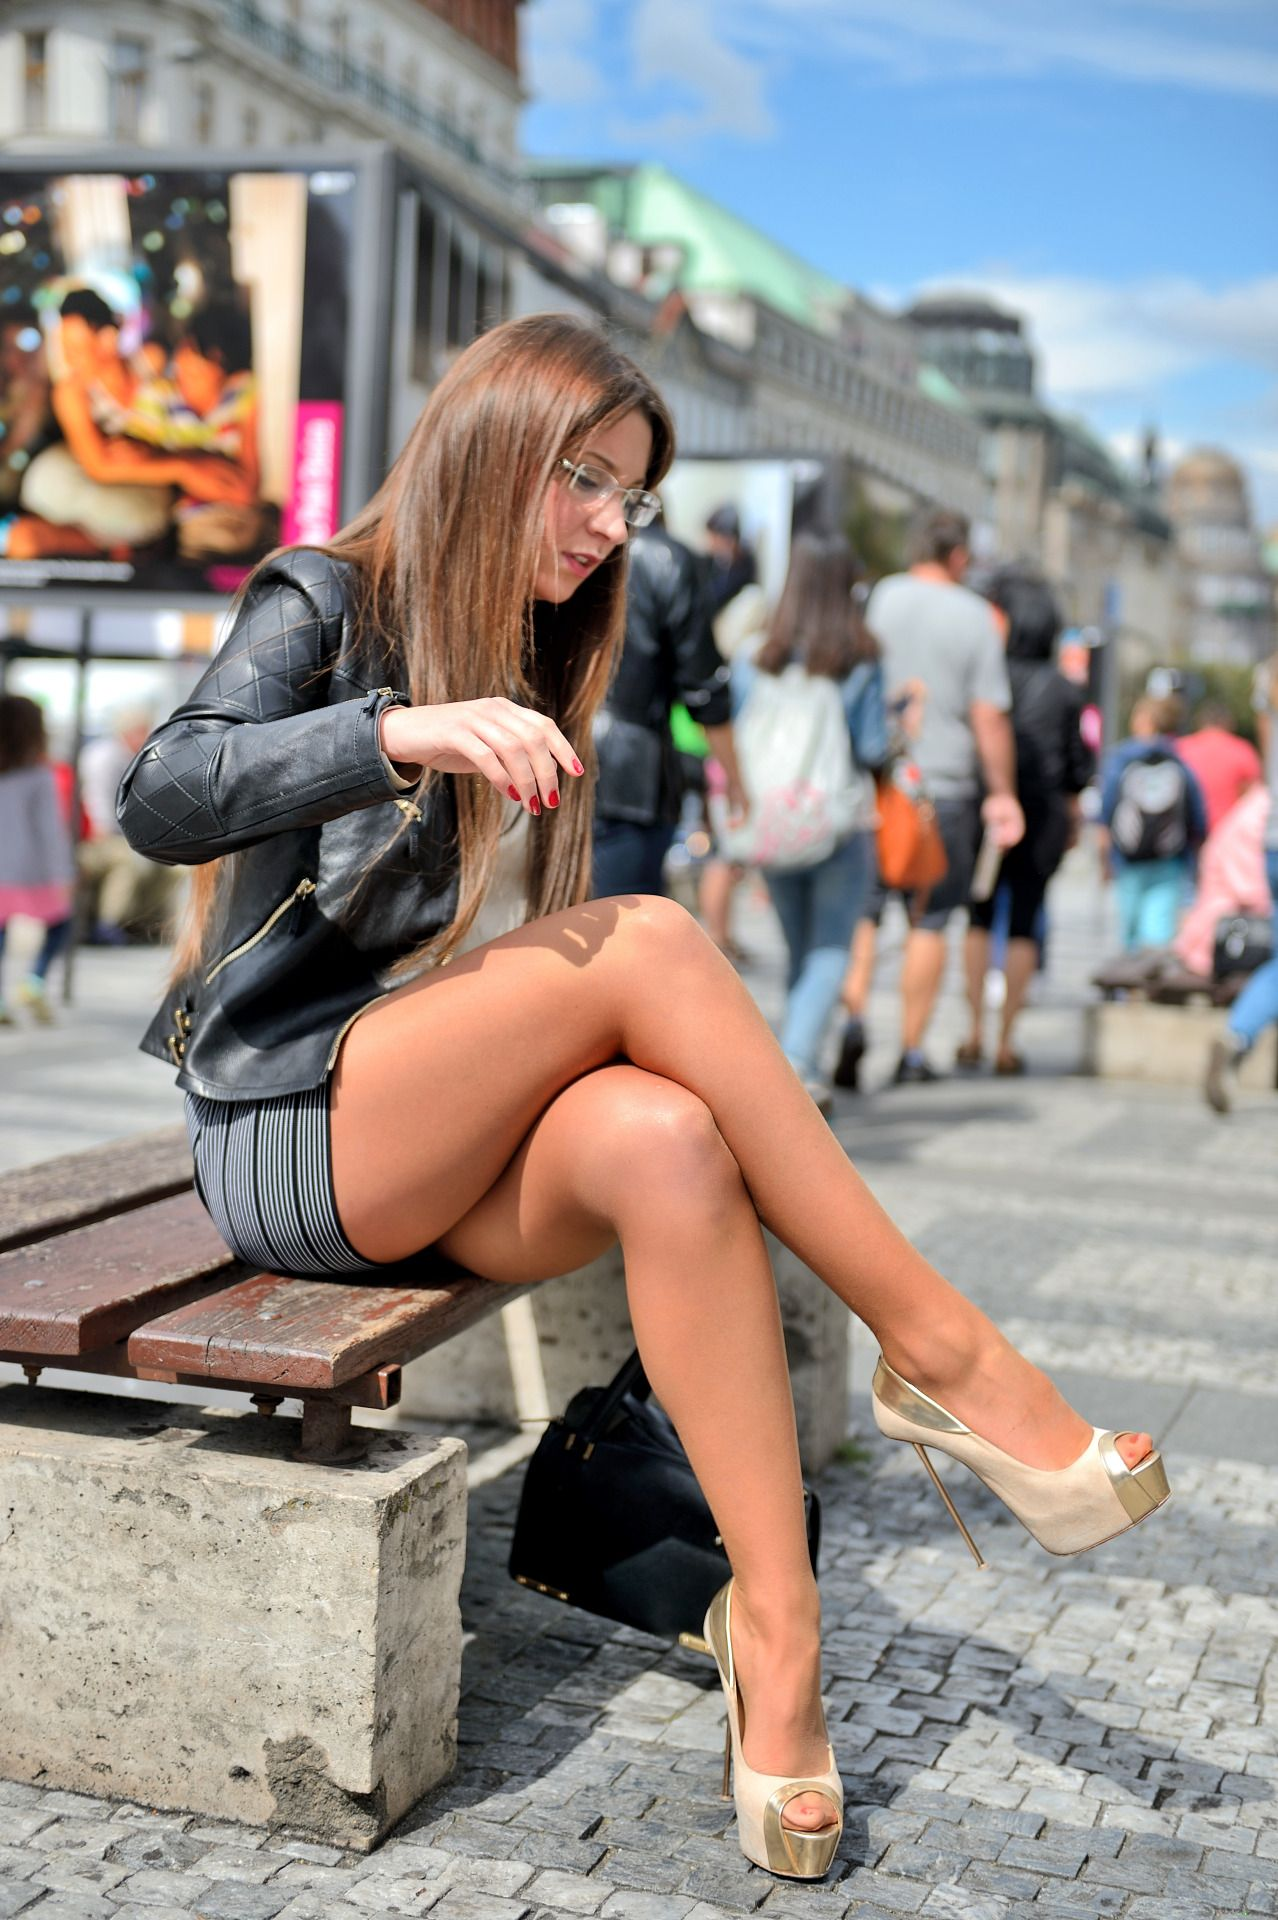 mini & high-heels street snap — wow!! nice! picture and cute